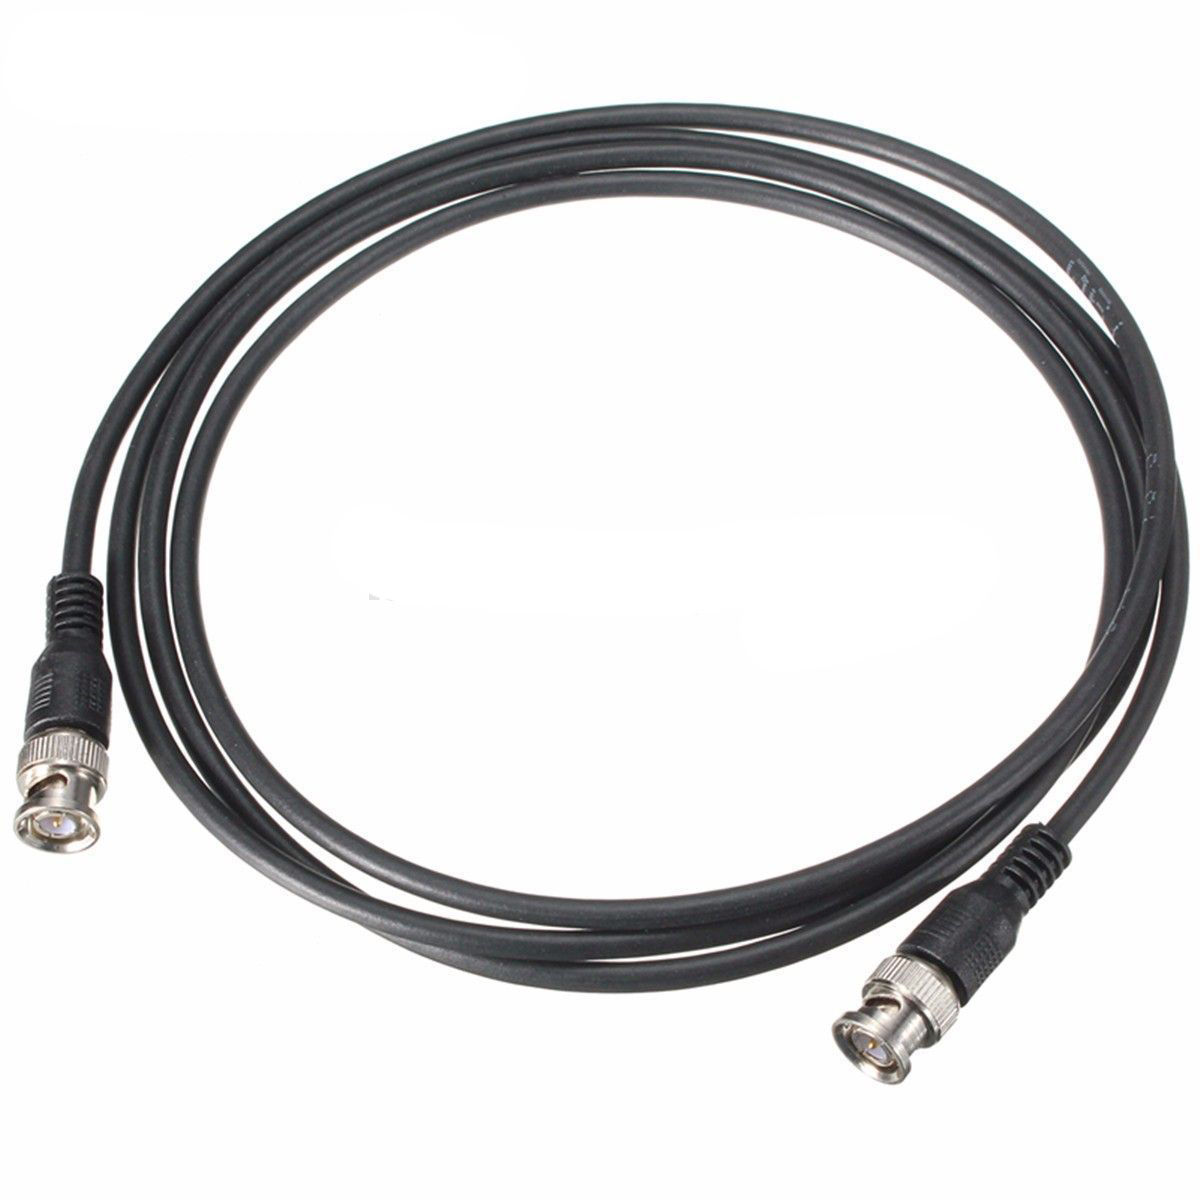 1M 3ft Length BNC Male to Male RG59 Coaxial Cable Cord Wire Connector for CCTV Camera Accessory 5pcs rg59 cable bnc patch leads rg59 bnc to bnc connector for cctv camera to dvr video security cable line cord 1m 1 5m 2m 3m